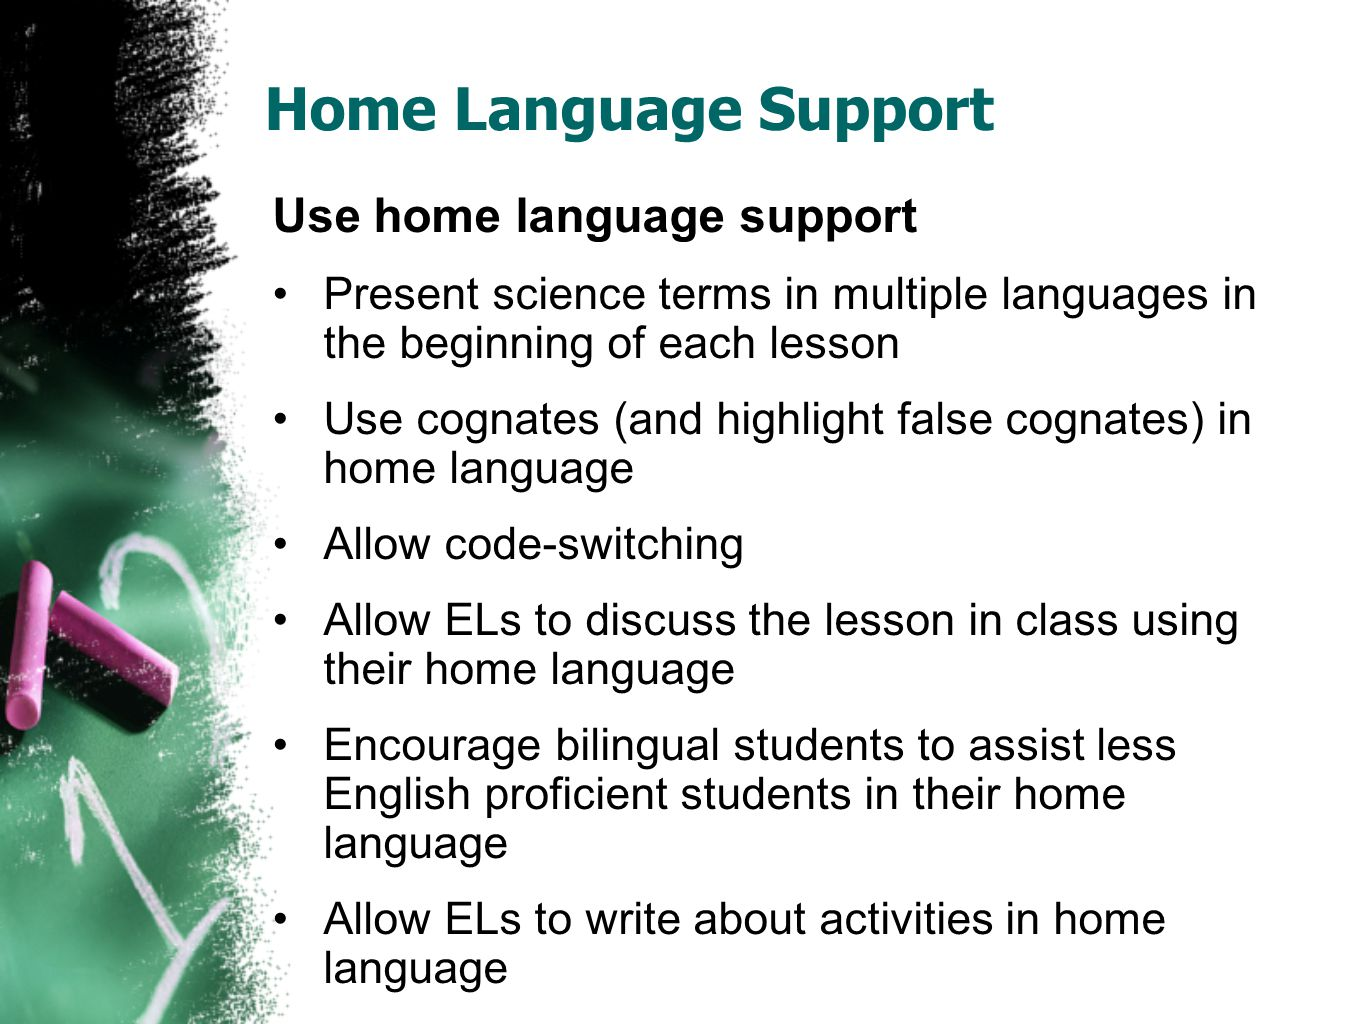 Home Language Support Use home language support Present science terms in multiple languages in the beginning of each lesson Use cognates (and highlight false cognates) in home language Allow code-switching Allow ELs to discuss the lesson in class using their home language Encourage bilingual students to assist less English proficient students in their home language Allow ELs to write about activities in home language